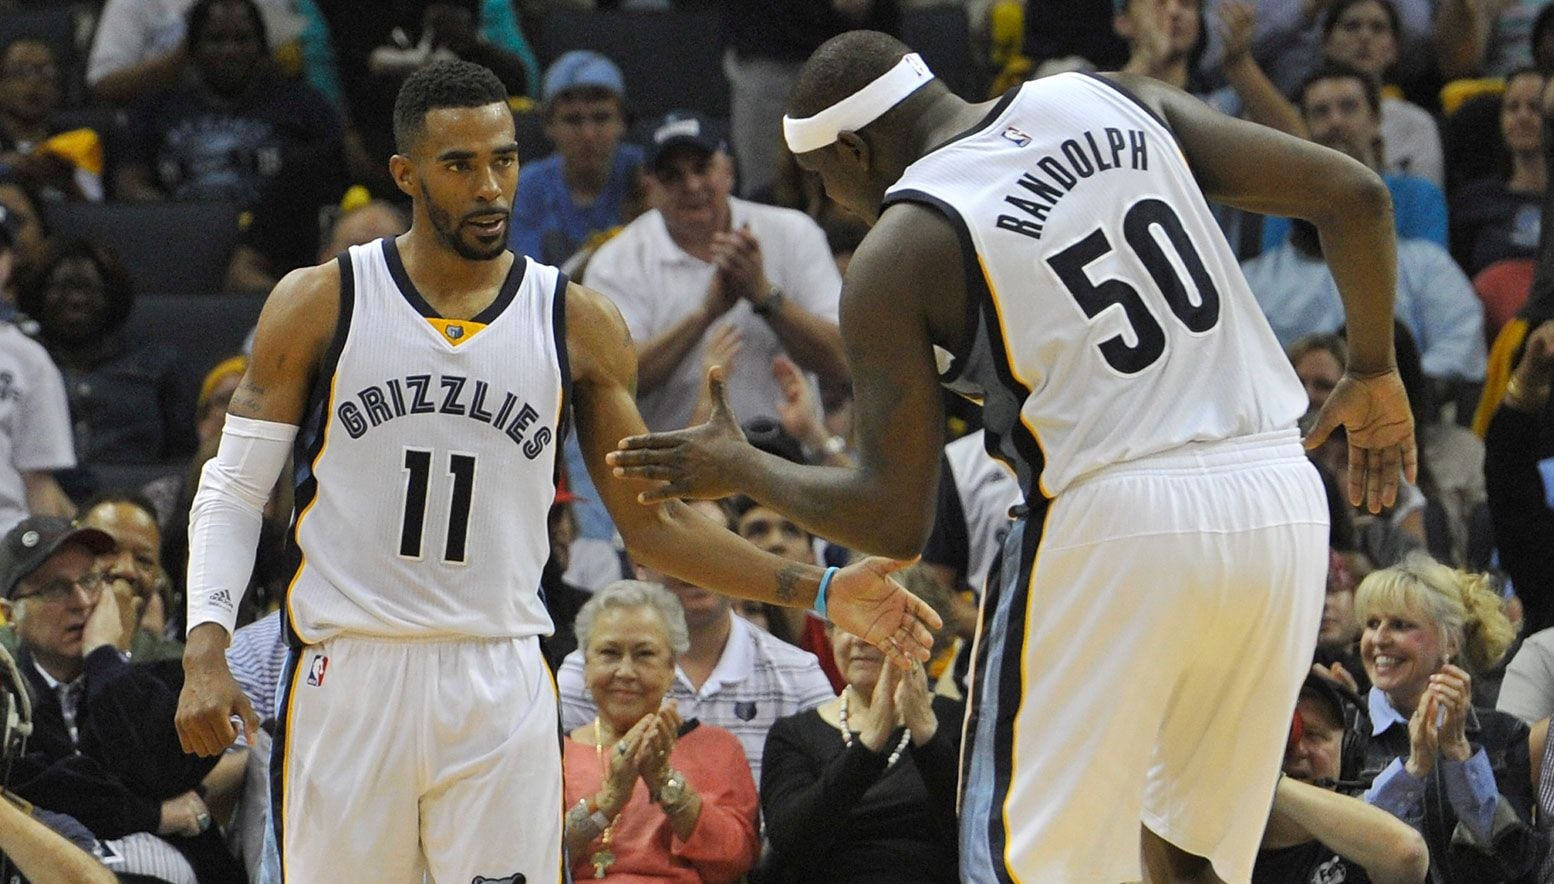 Mike Conley and Zack Randolph high five